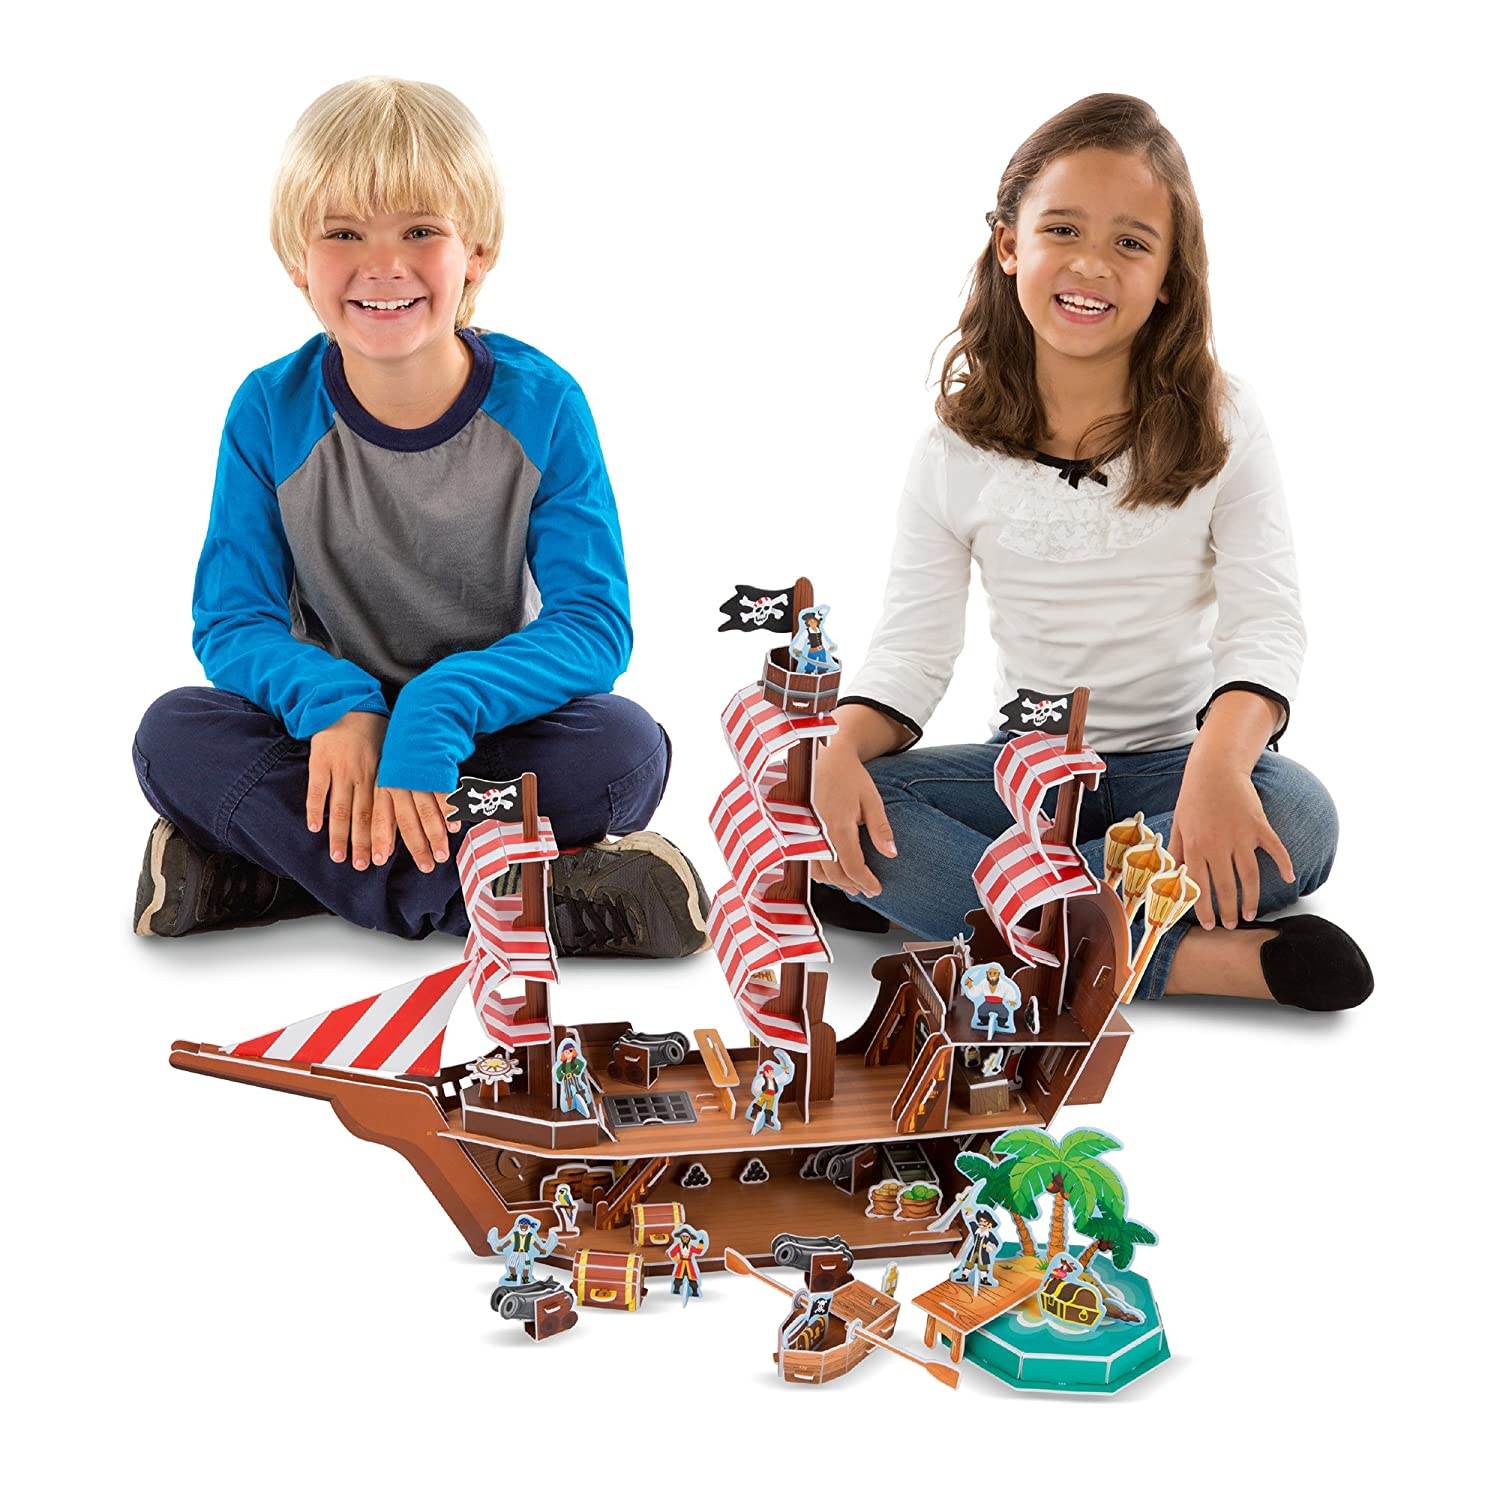 Melissa & Doug Pirate Ship 3-D Puzzle and Ship in One (100+ pcs, 21 x 16 x 5.25 inches, assembled) Melissa and Doug 9045